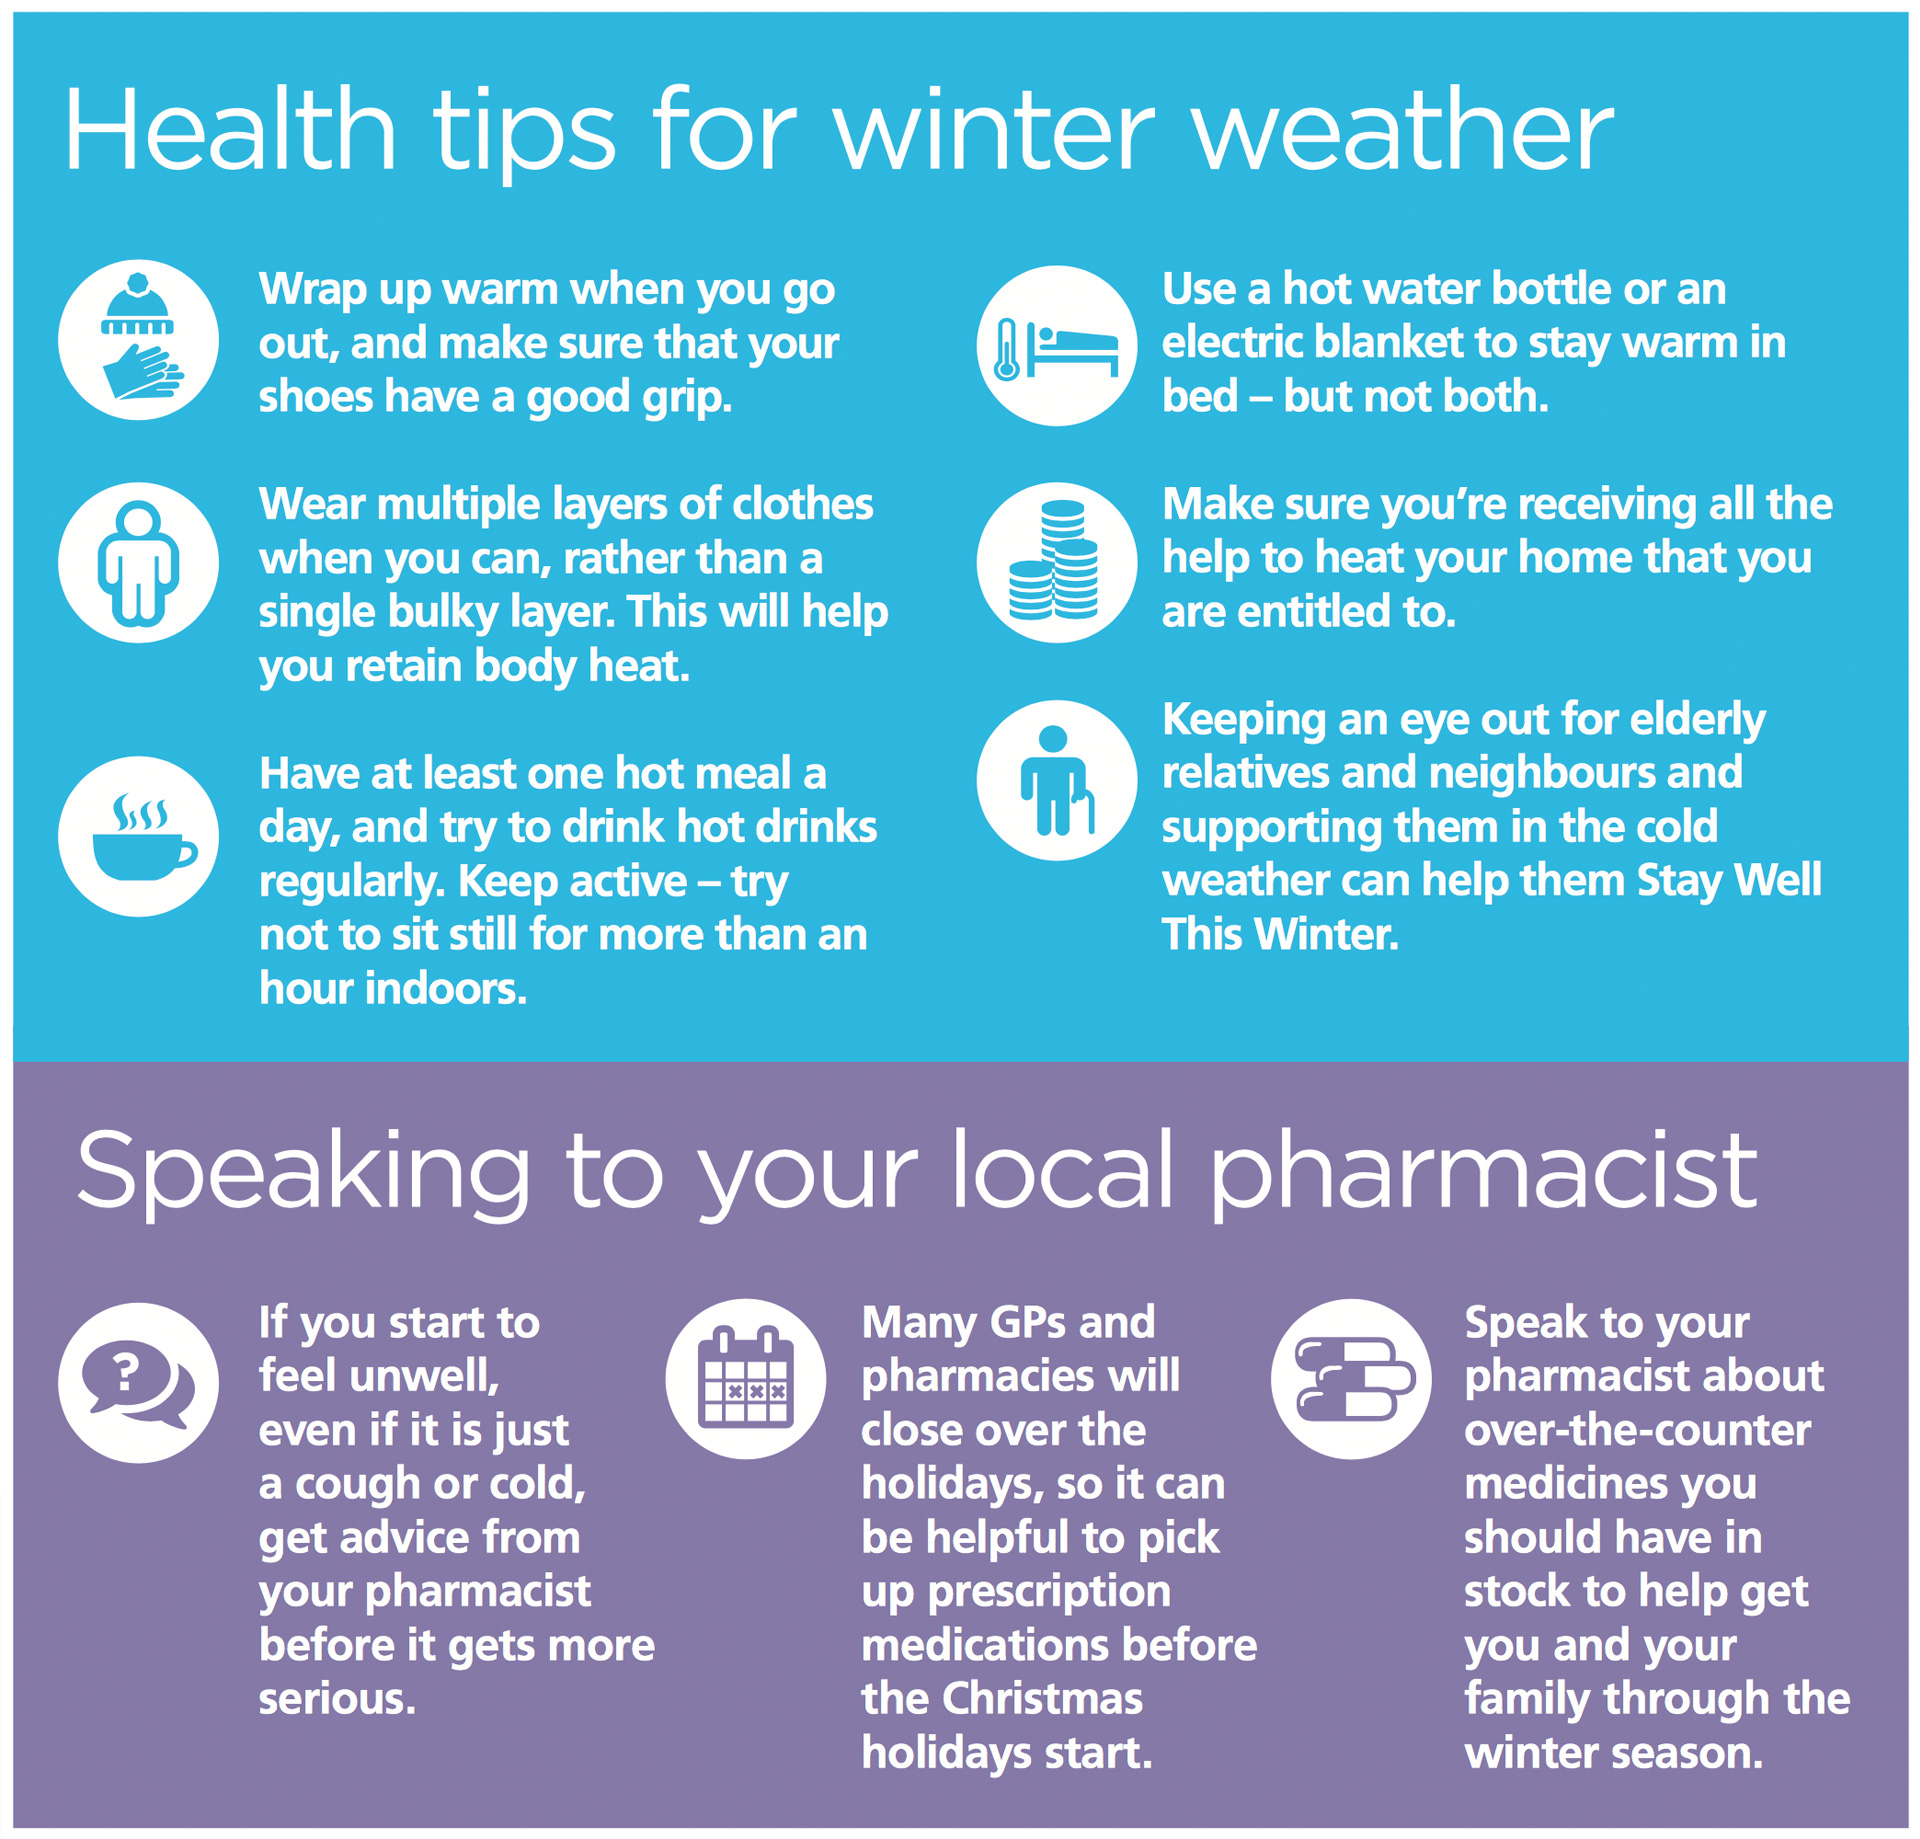 Health tips for winter